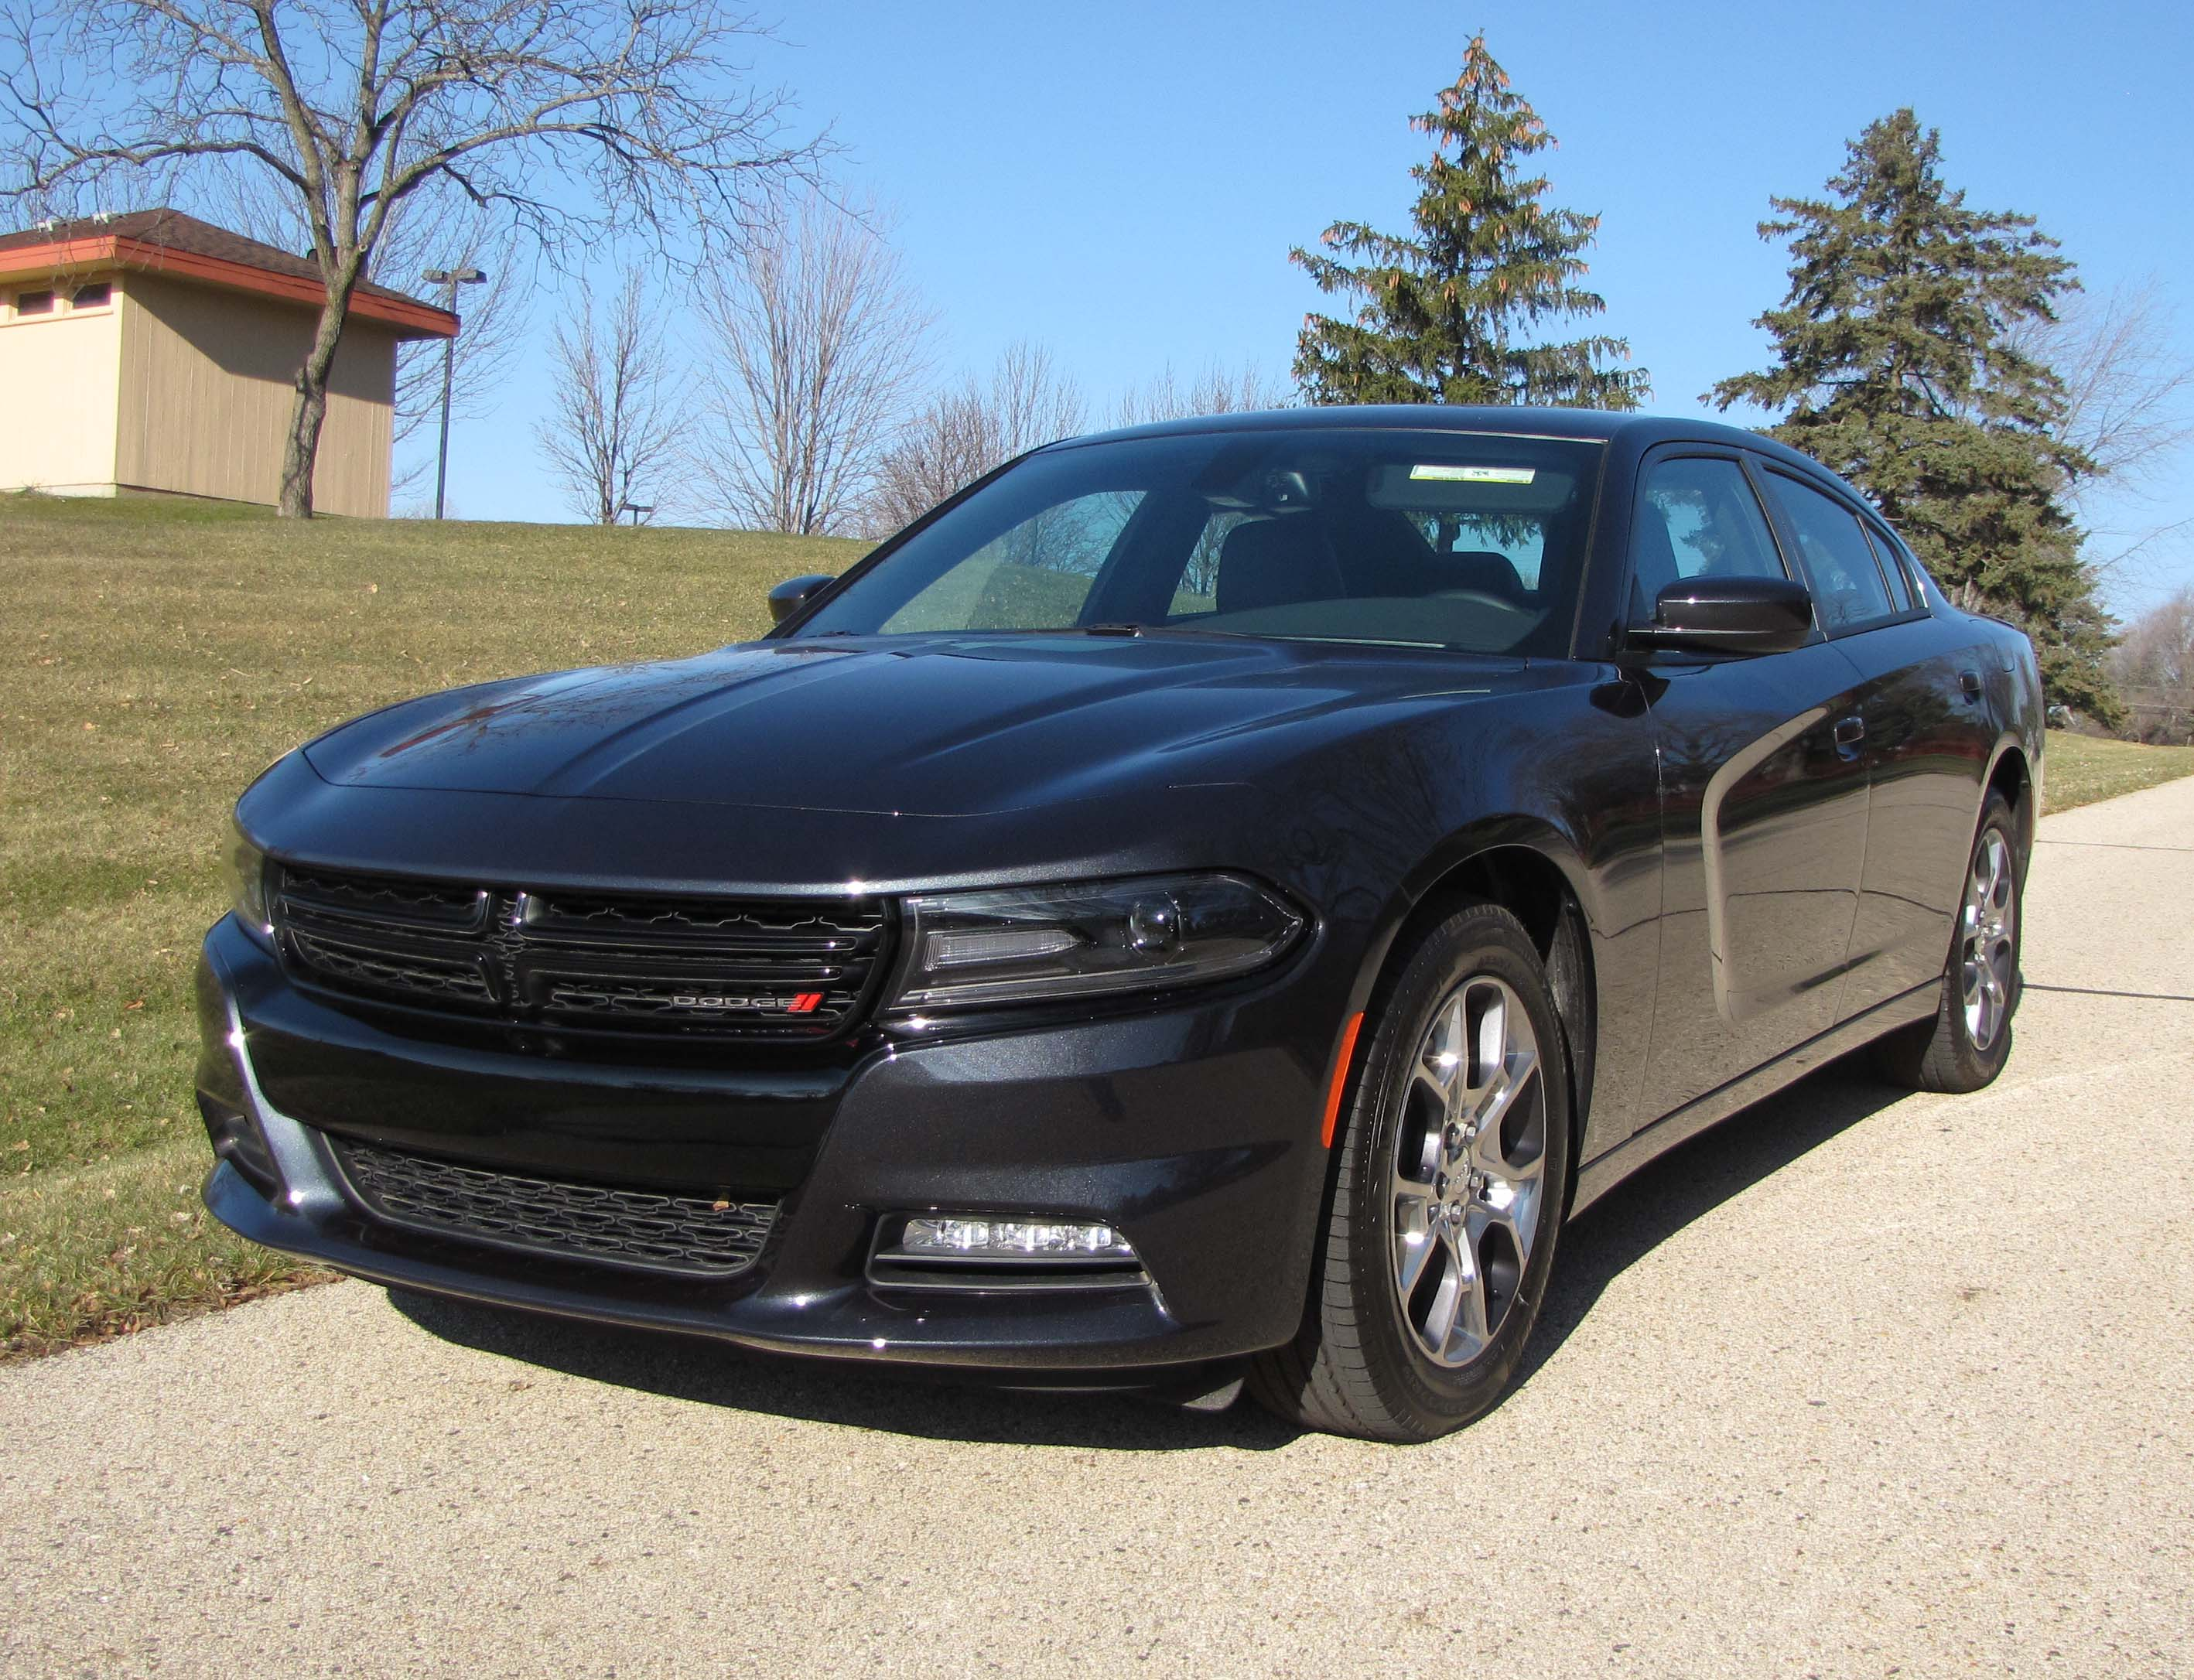 2016 Dodge Charger Sxt Awd Savage On Wheels